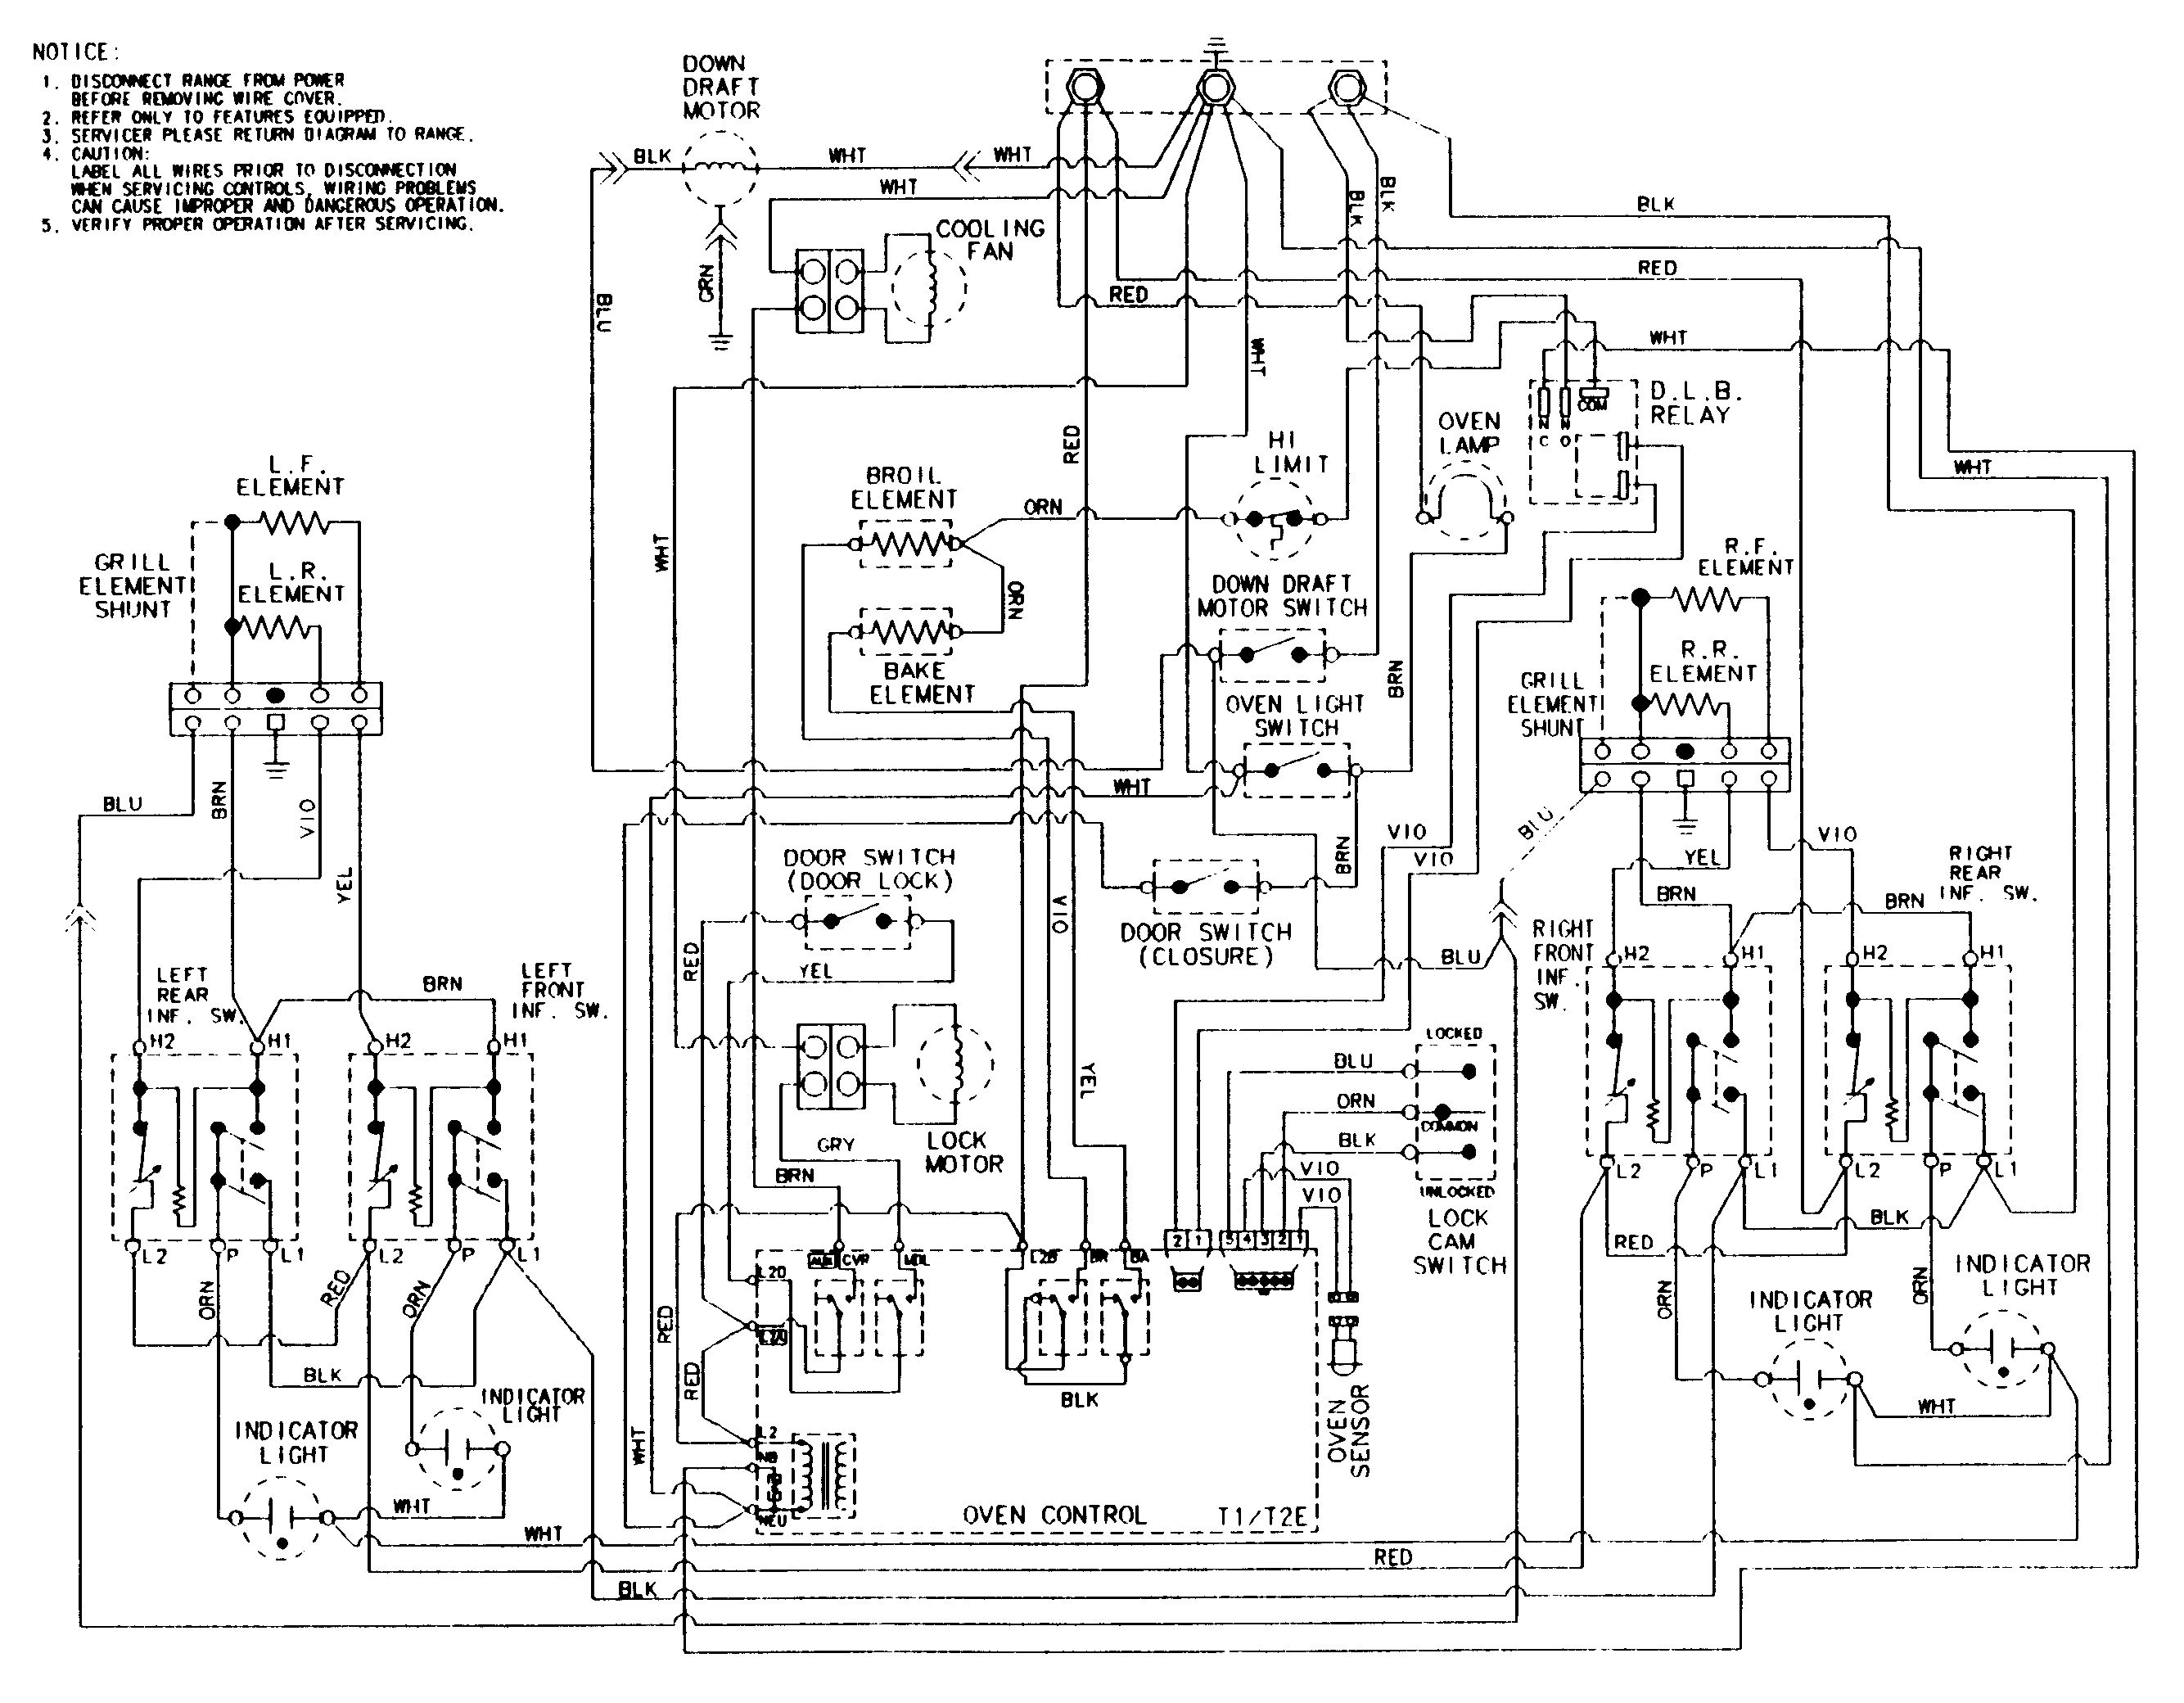 Jenn Air Wiring Diagram - Trusted Wiring Diagram throughout ... Jenn Air Wiring Diagrams on jenn air warranty, jenn air solenoid, jenn air coil, jenn air schematic, jenn air clock, jenn air fan diagram, jenn air switch, jenn air thermostat, jenn air installation, gas fireplace schematic and diagram, jenn air cover, jenn air repair, jenn-air parts diagram, fireplace parts diagram, jenn air control panel, jenn air accessories, jenn air motor diagram, jenn air exhaust, jenn air system,